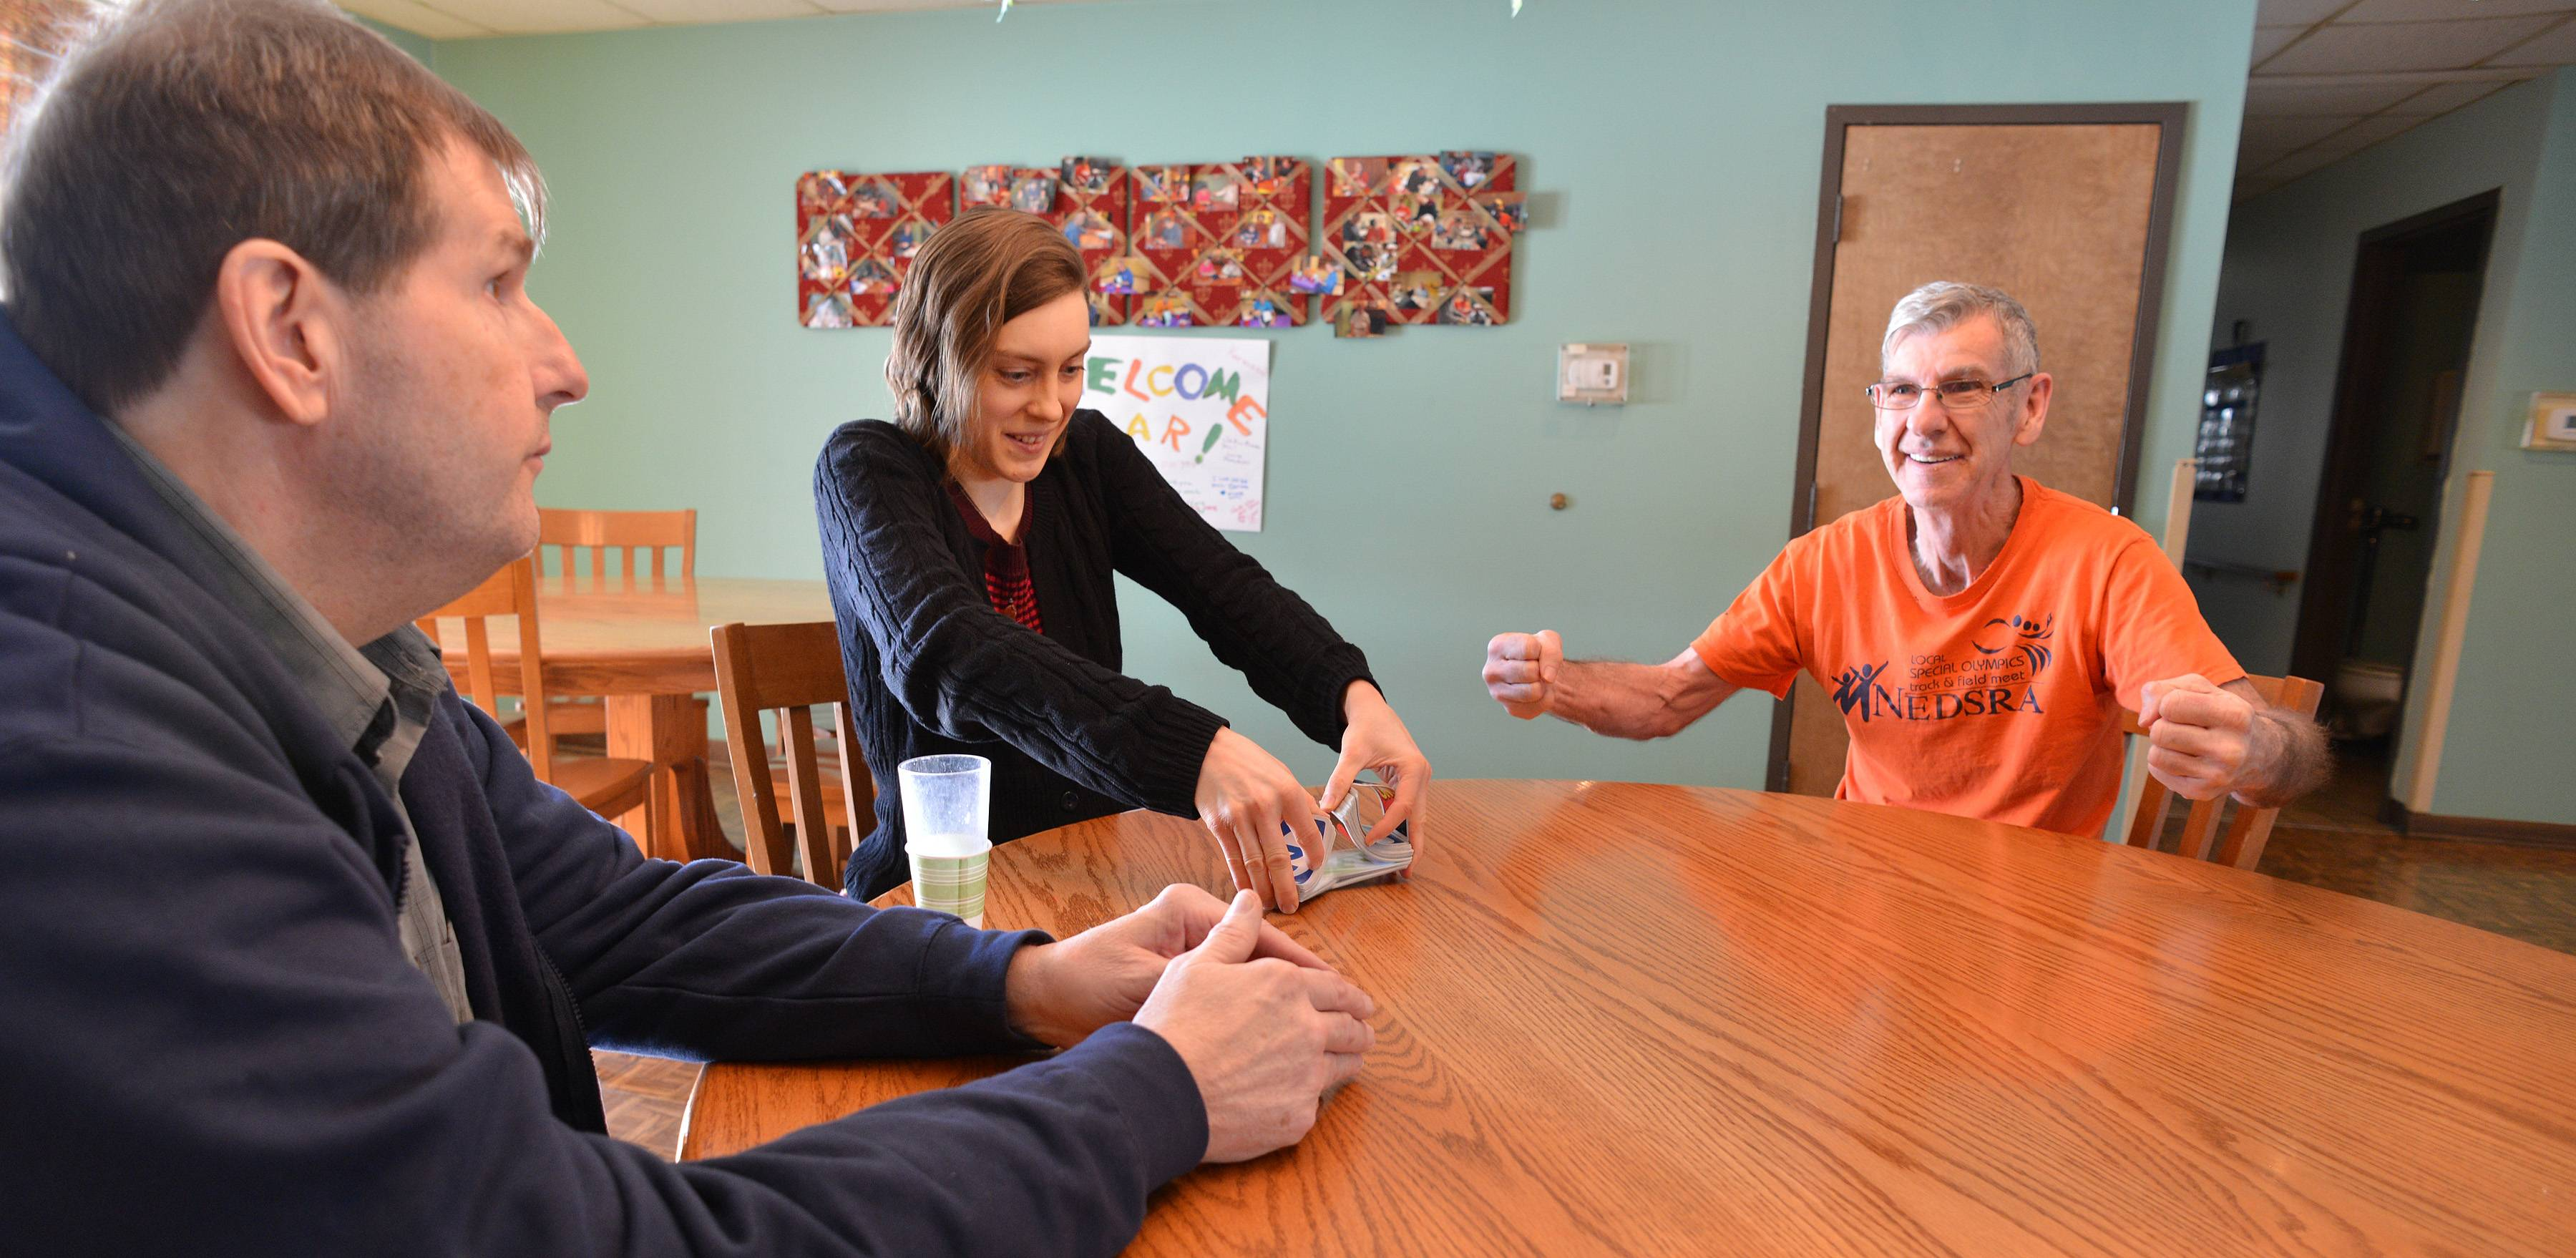 Residents enjoy a homestyle environment at the Deicke Home in Lombard, which has been serving adults with developmental disabilities for the past 30 years. Volunteer Tiffany Brownlie, center, plays cards with residents James Bosh and Eddie Doutlick.